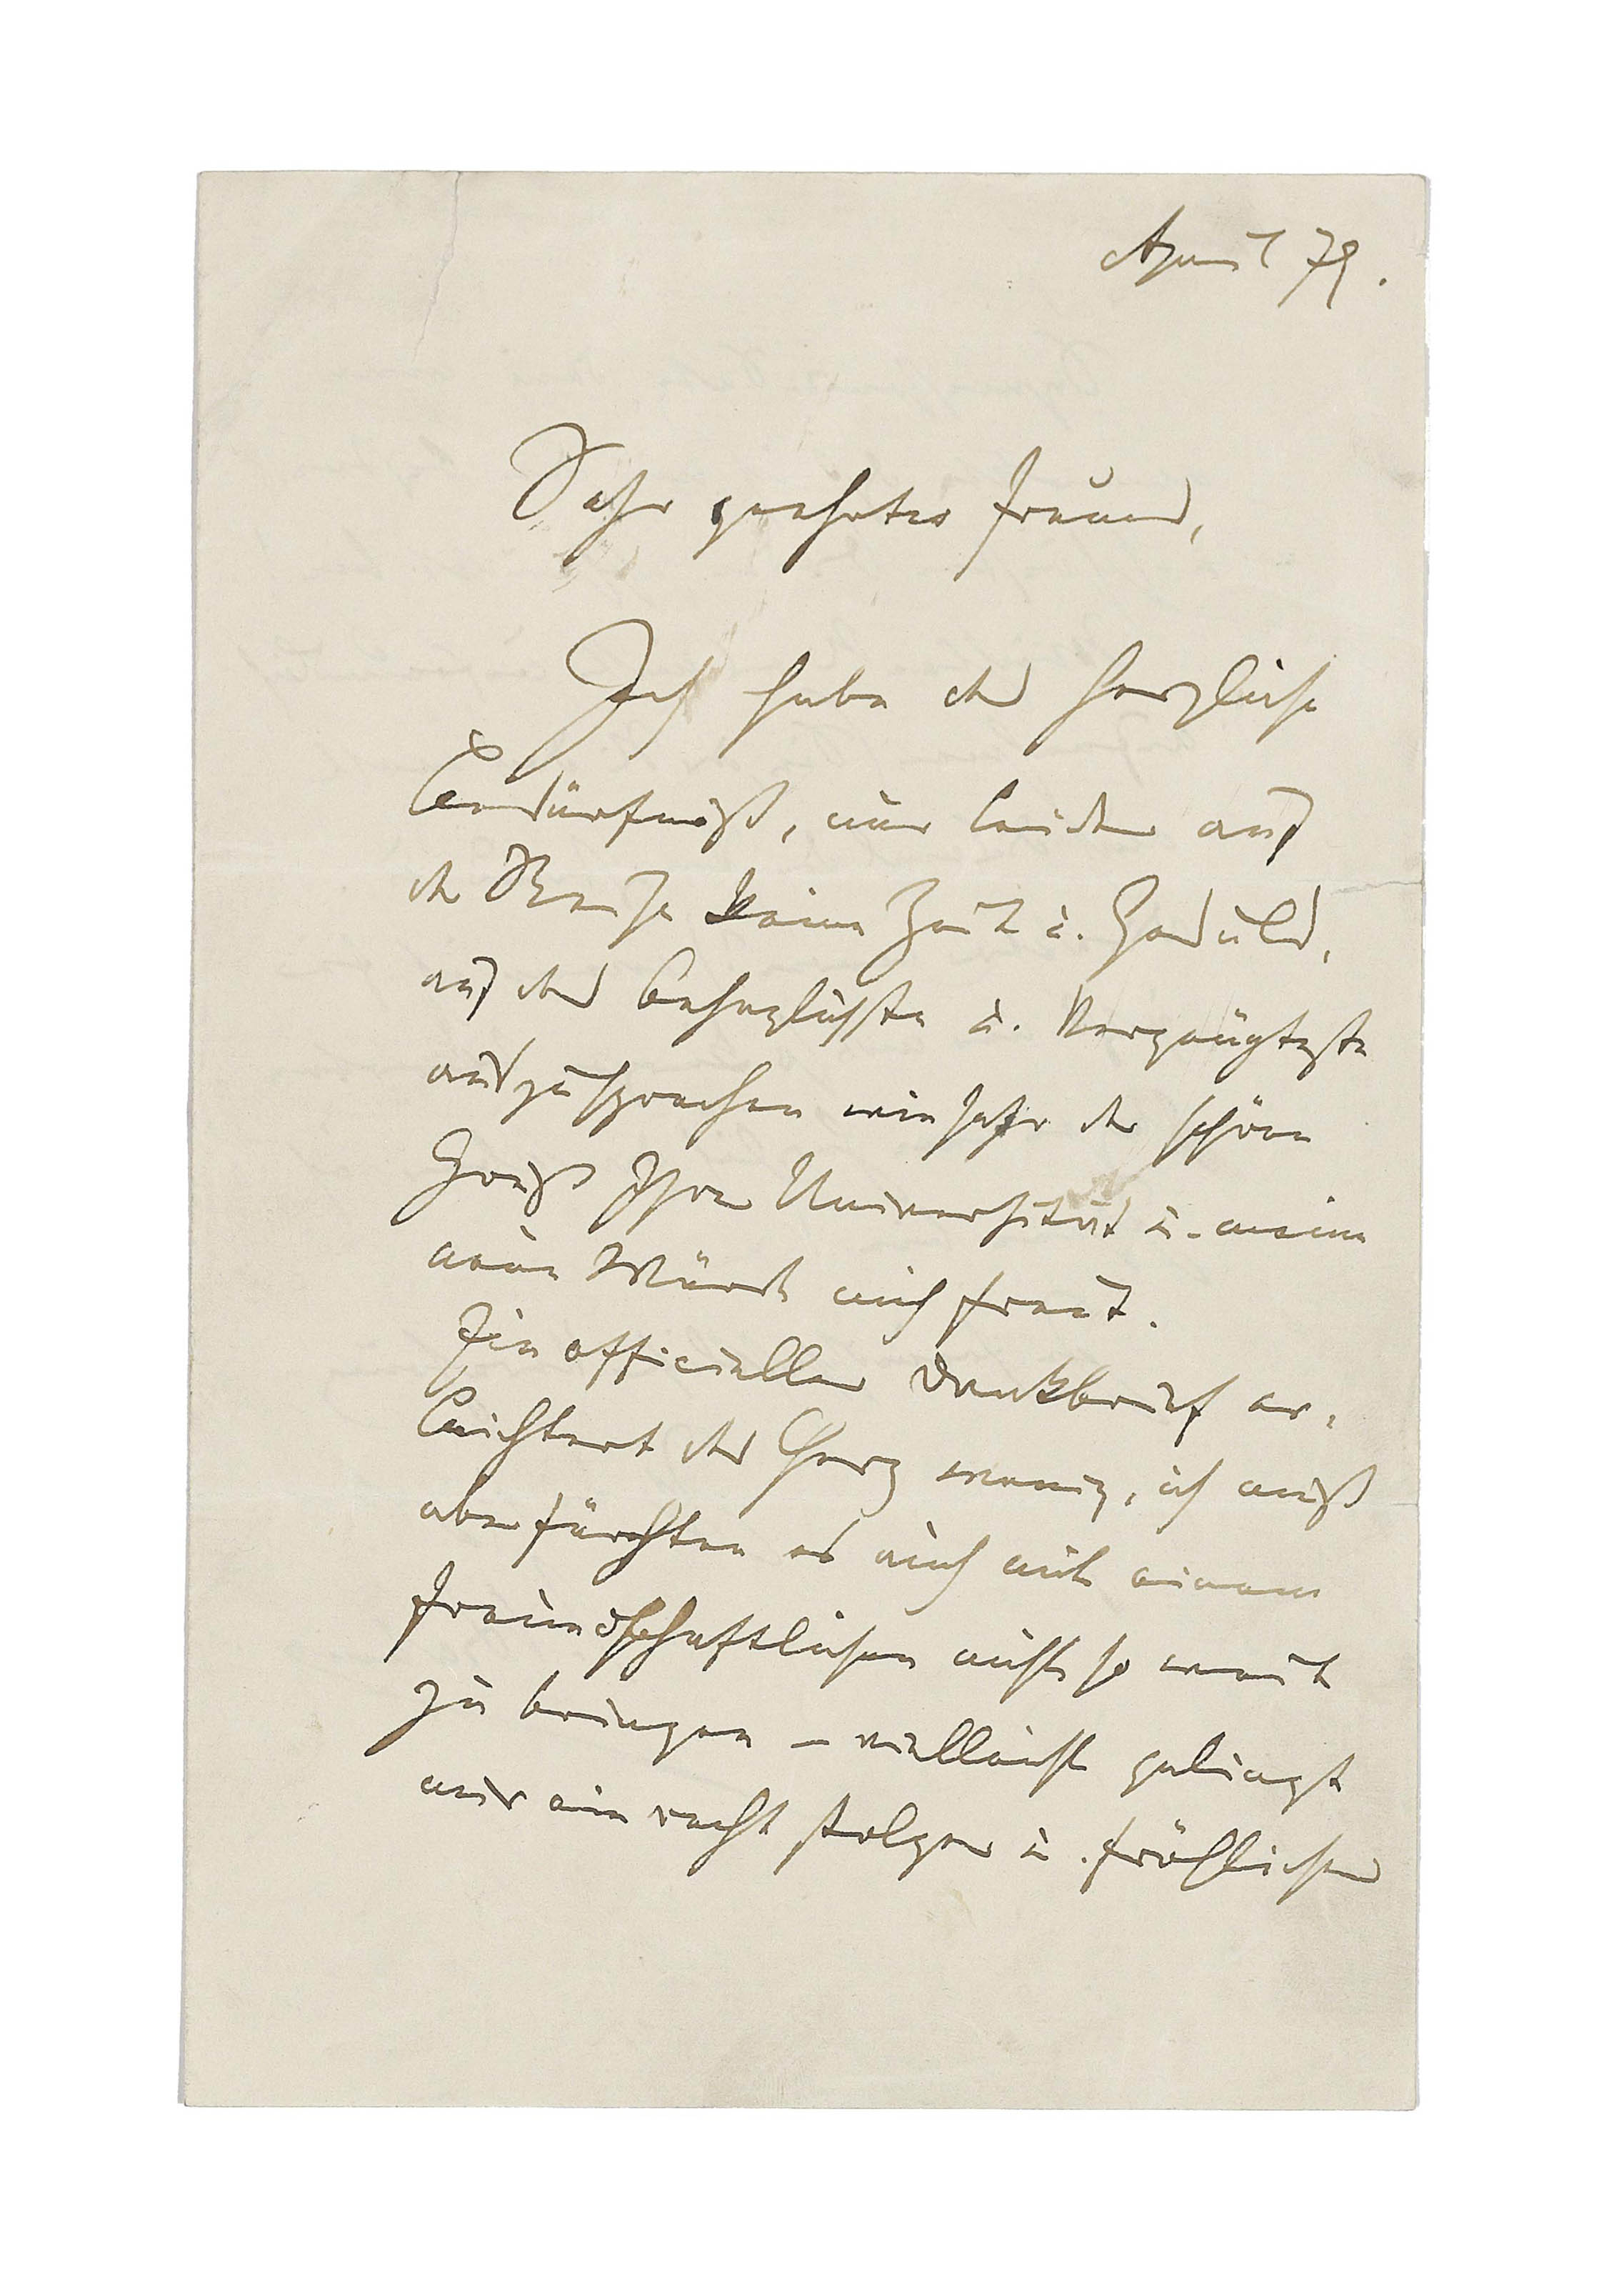 BRAHMS, Johannes (1833-1897). Autograph letter signed to [Dr Adolph Kauffman], n.p., April 1879. two pages, 8vo, bifolium (short tears at folds and upper margin, repaired with tape). Provenance: collection of Dr Fritz and Dita Callomon, and thence by gift.